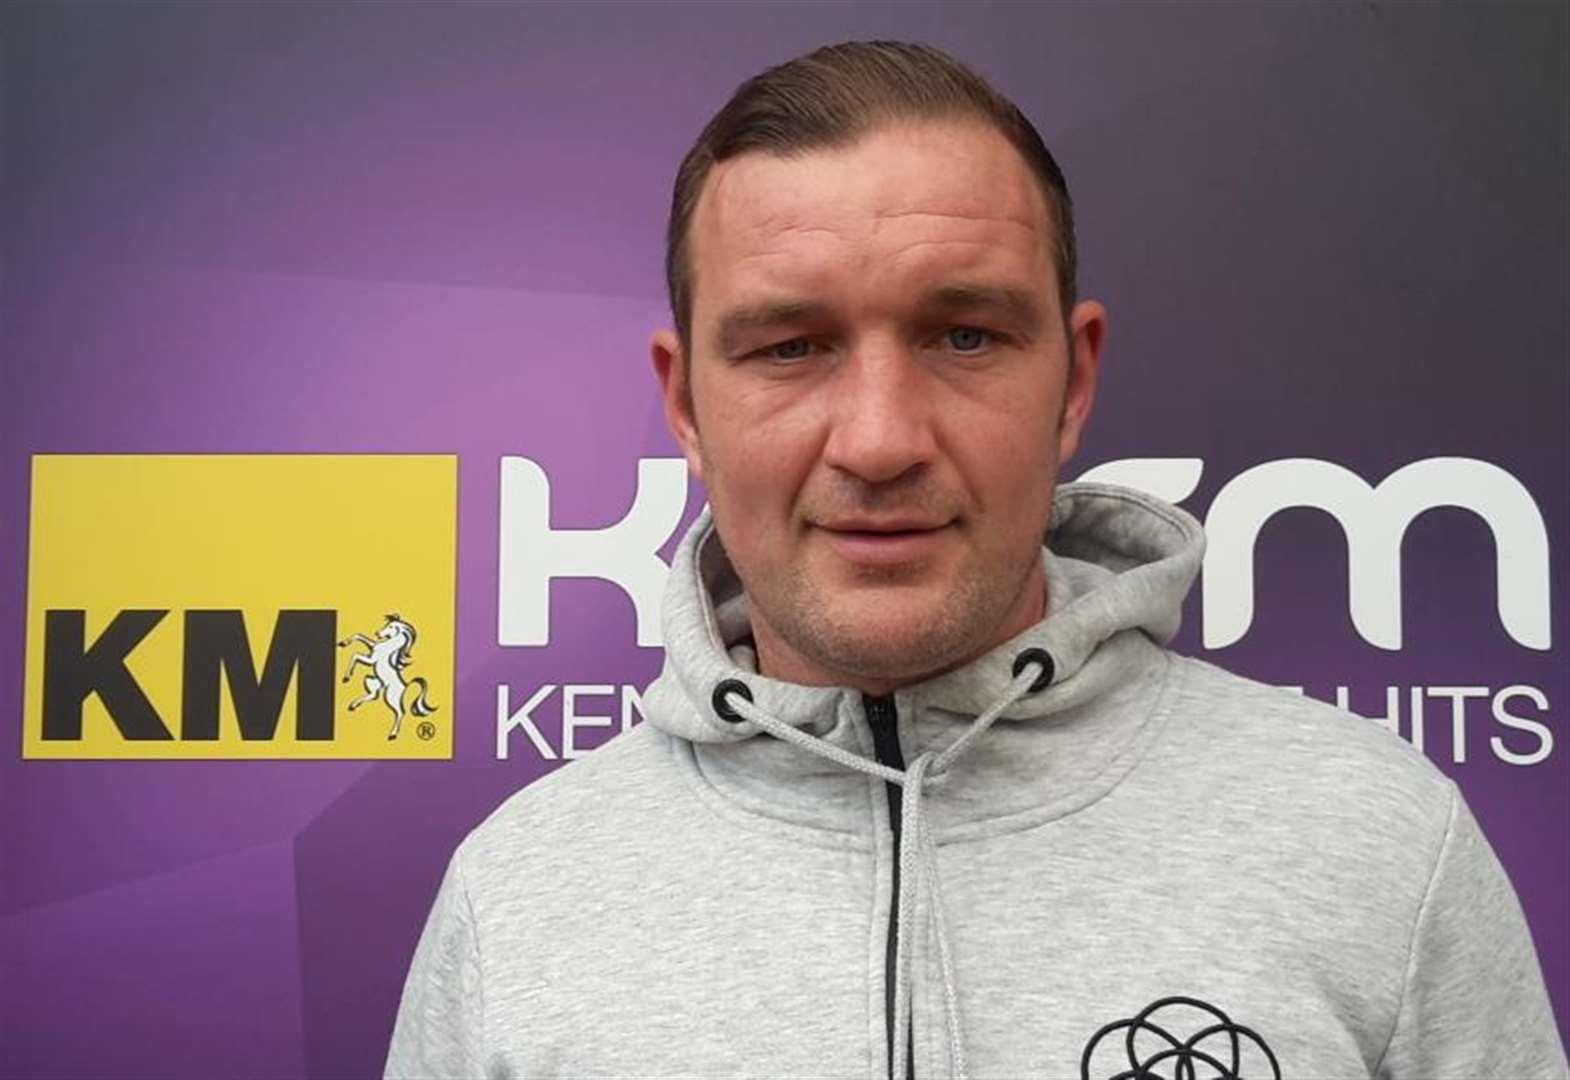 KM football podcast 16 - with Danny Kedwell